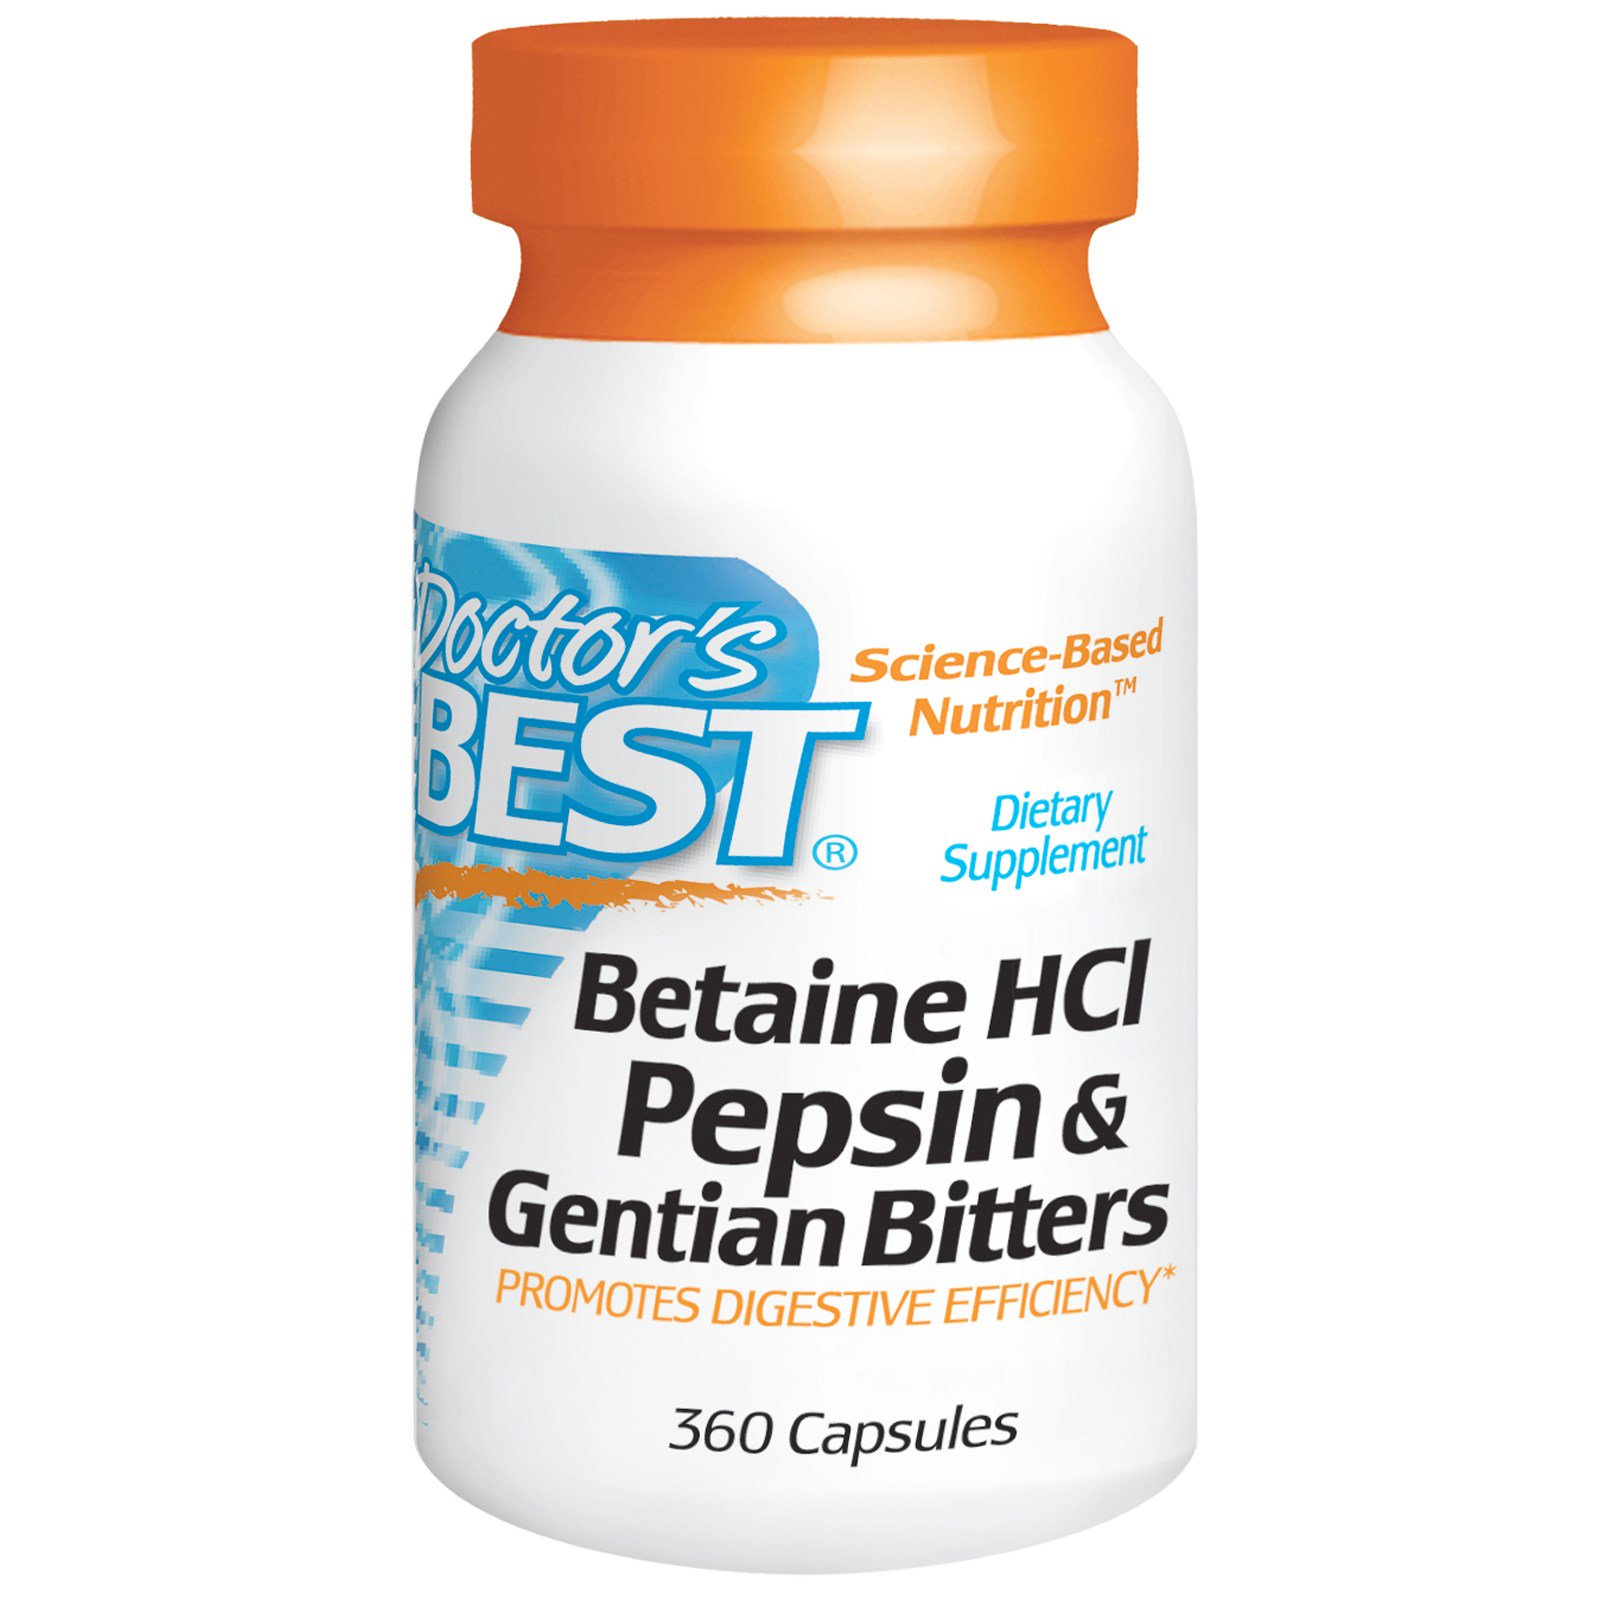 Betaine Reviews Betaine Reviews new pictures